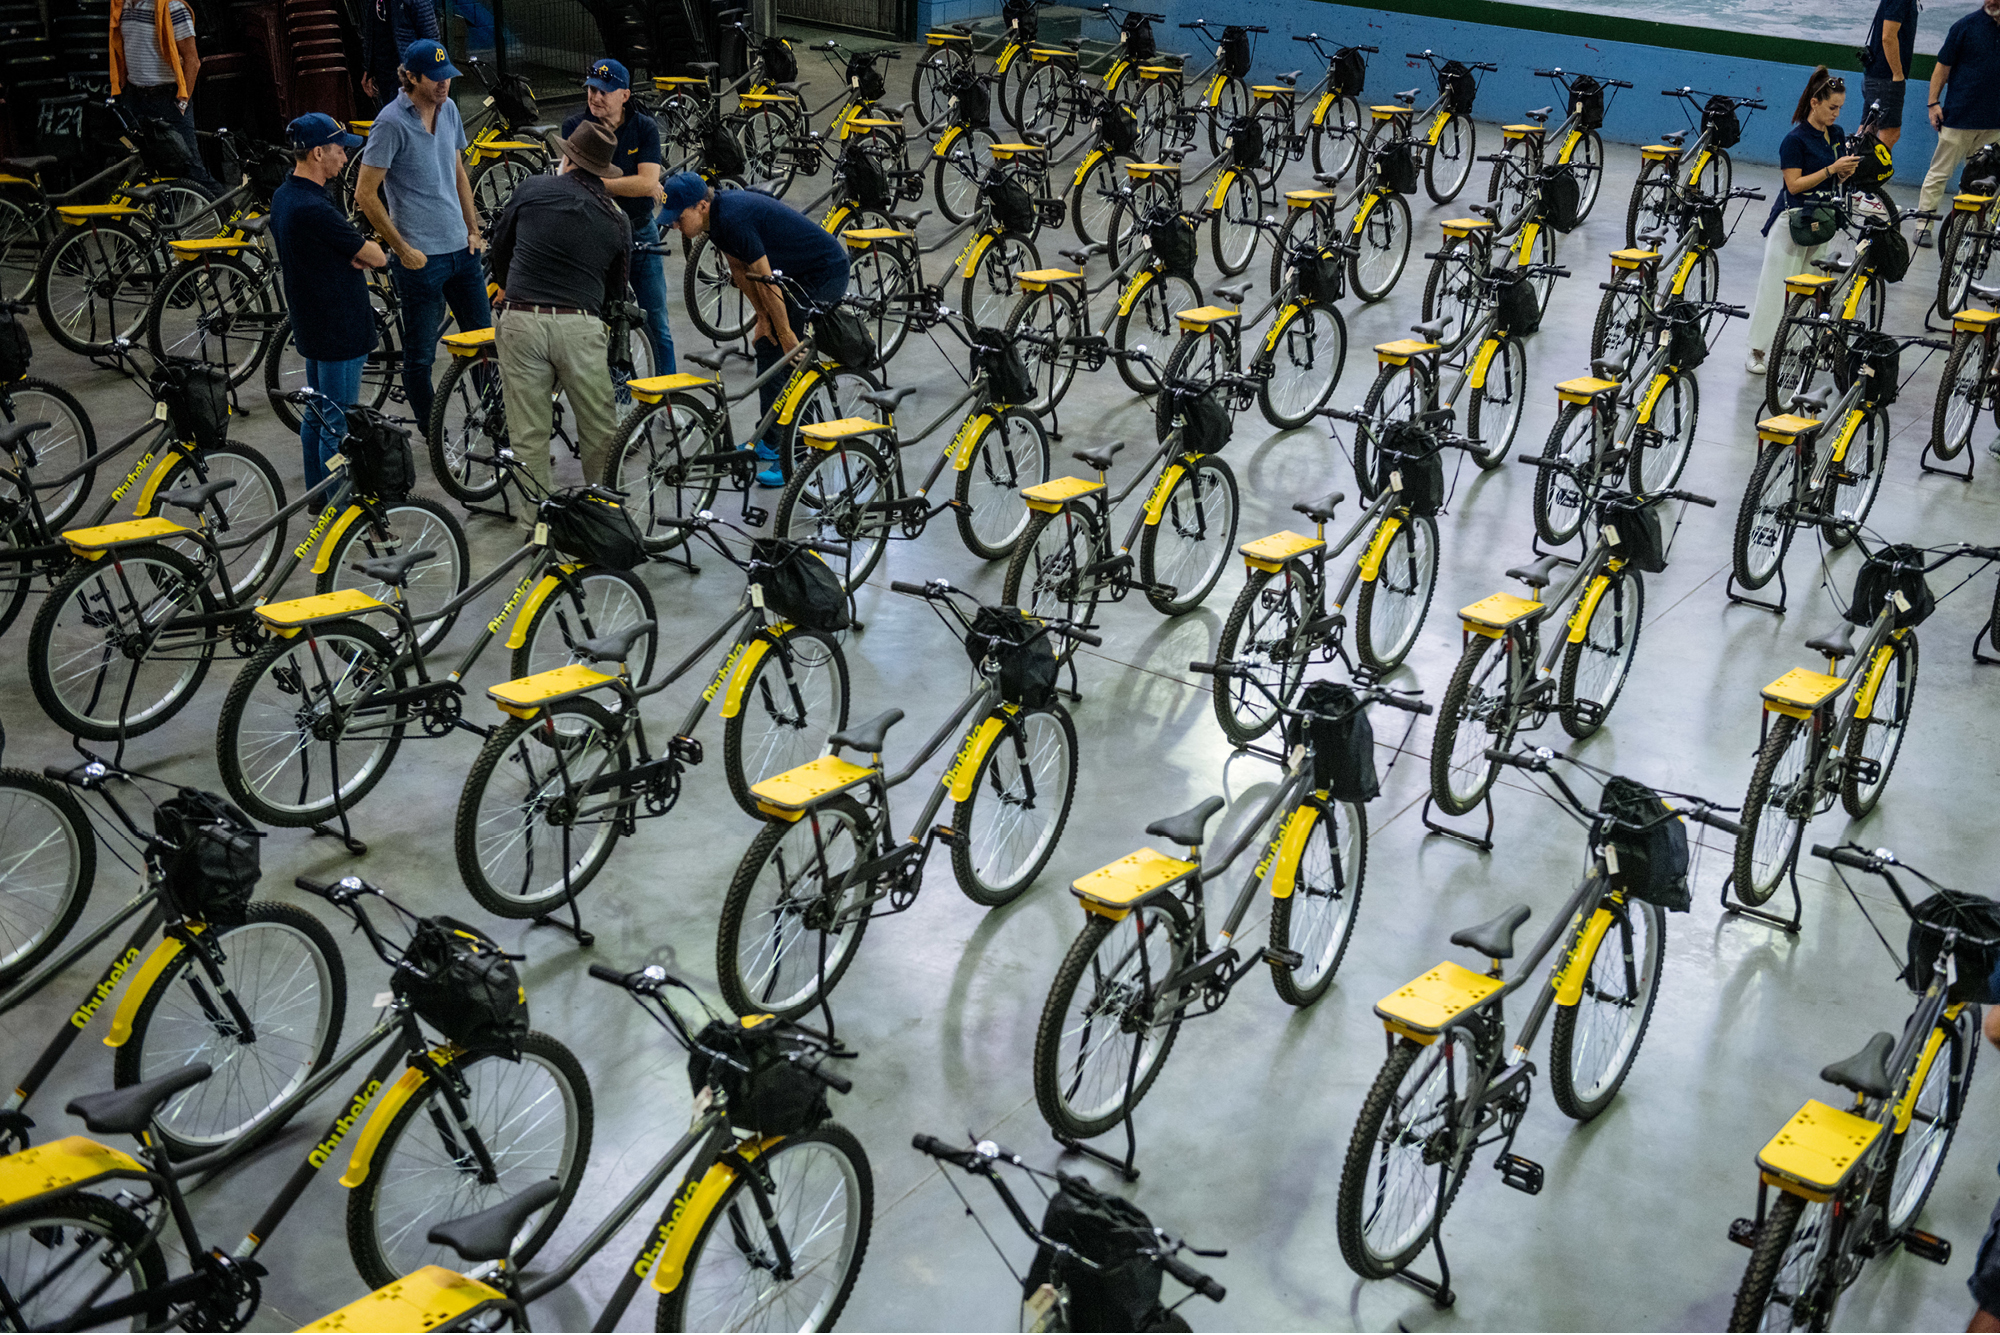 Qhubeka distributed 100 Breitling-funded bicycles to 100 pupils at the Usasazo Secondary School in Khayelitsha, Cape Town.